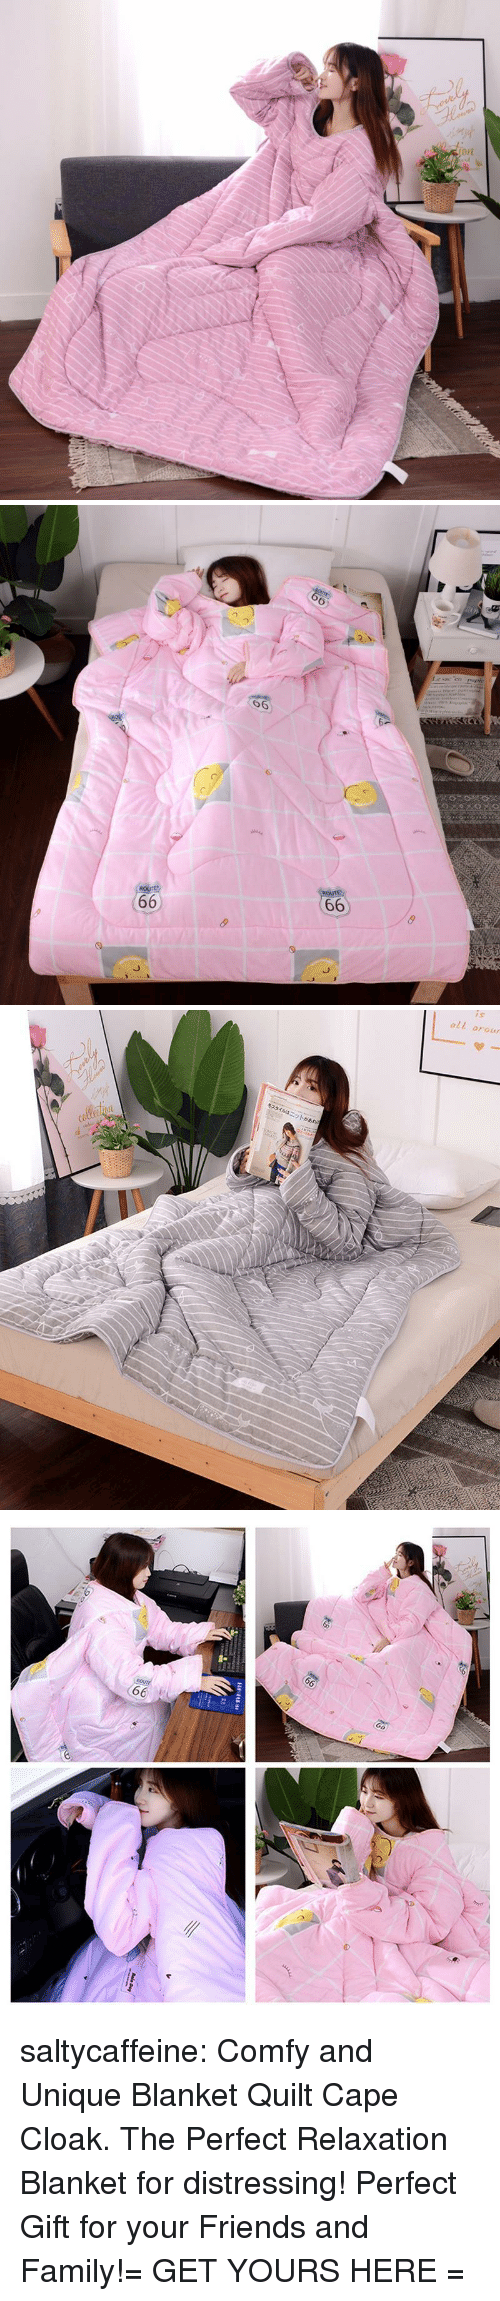 relaxation: 6  6   oll arour saltycaffeine:  Comfy and Unique Blanket Quilt Cape Cloak. The Perfect Relaxation Blanket for distressing! Perfect Gift for your Friends and Family!= GET YOURS HERE =